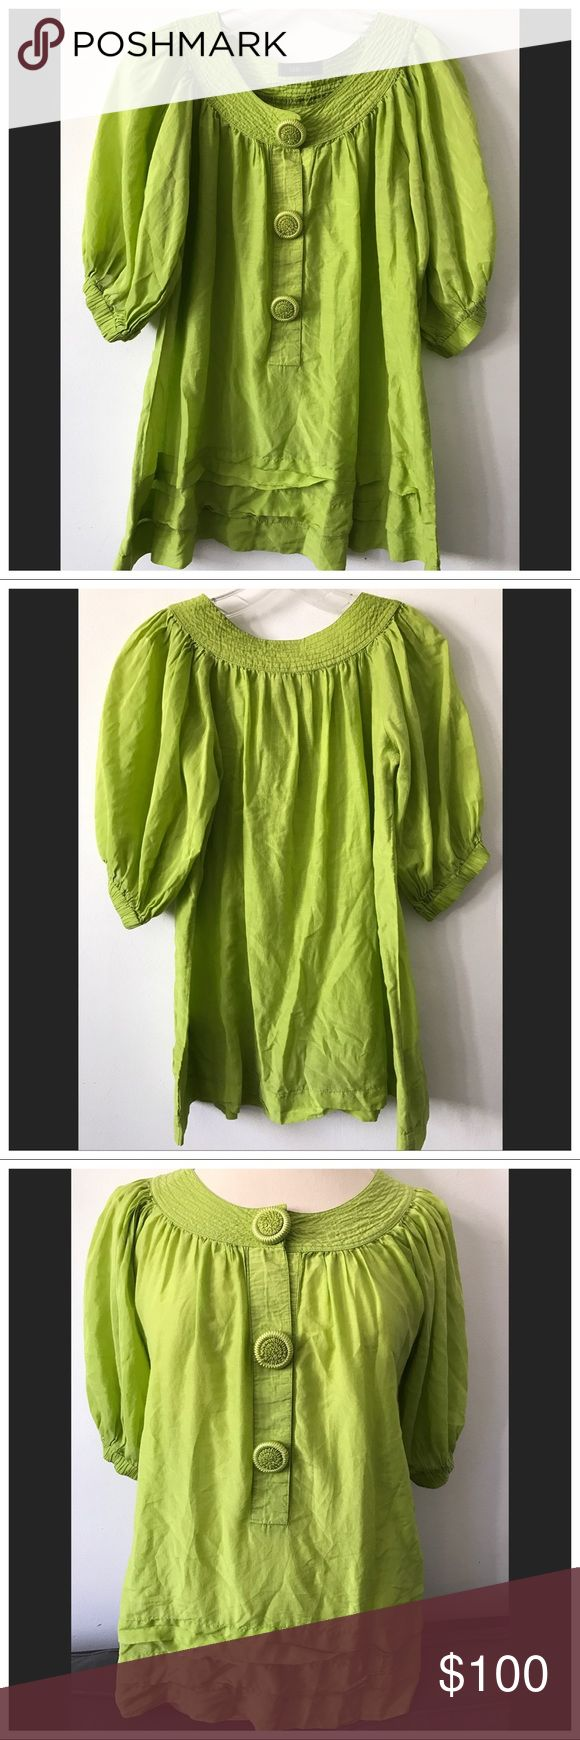 Anna Sui Cotton Voile Peasant Top Size 6 Excellent condition Anna Sui cotton voile peasant top in a bright beautiful light green. Size 6. Tiered ruffles accent this oversized embroidered button decorated Blouse, with blouson elastic sleeves and an easy Boho silhouette. Perfect condition with no flaws! Anna Sui Tops Blouses